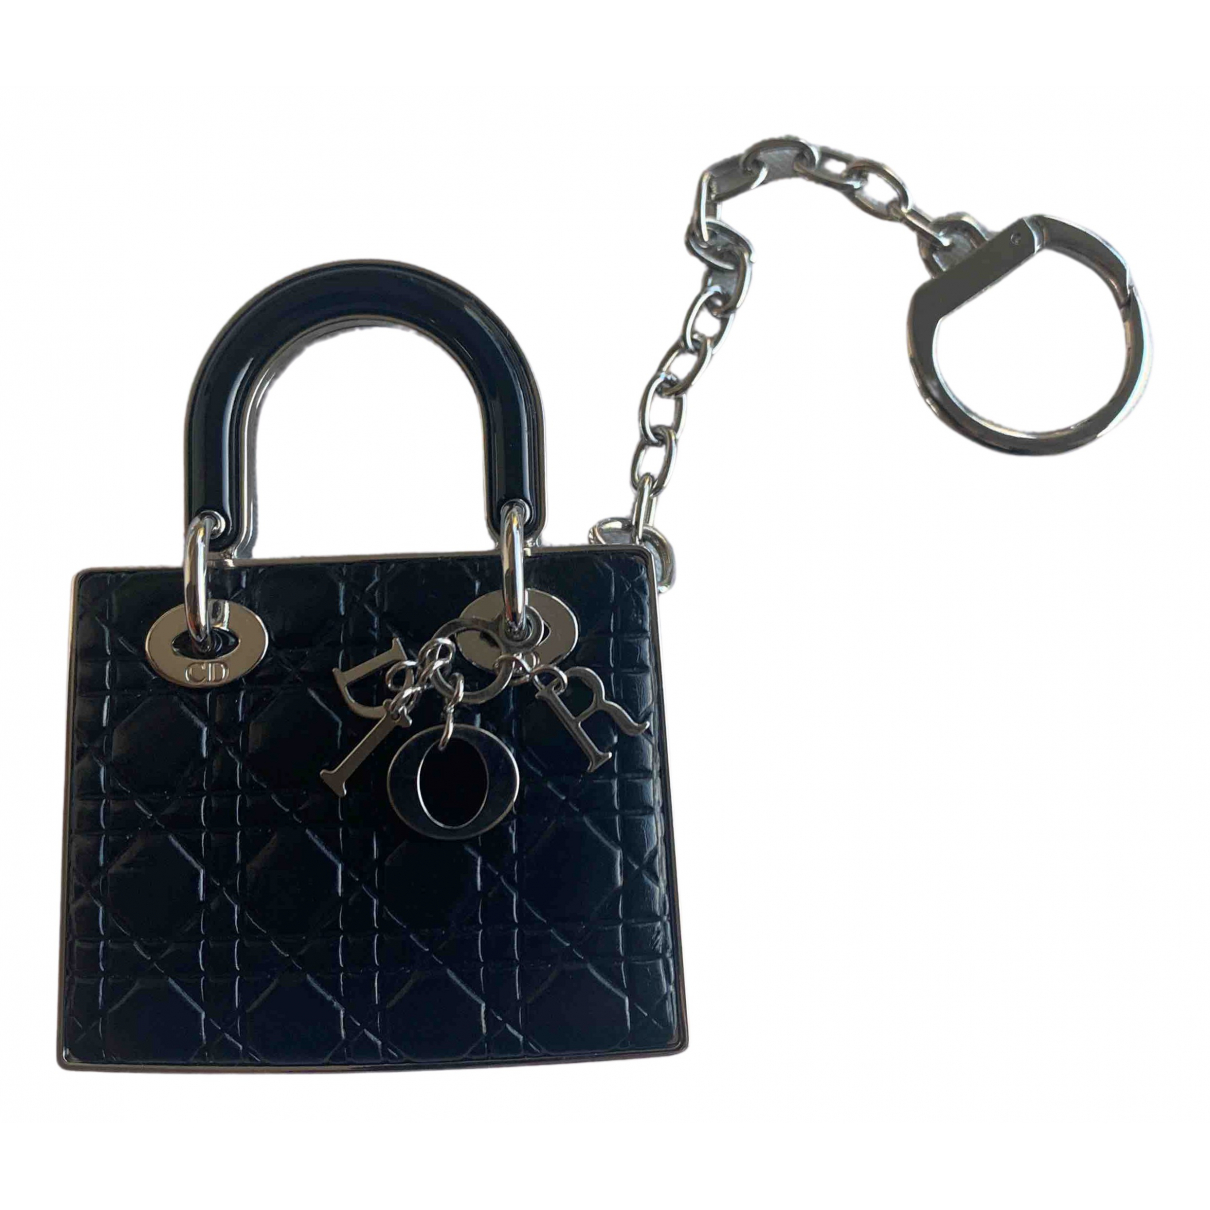 Dior N Black Leather Purses, wallet & cases for Women N